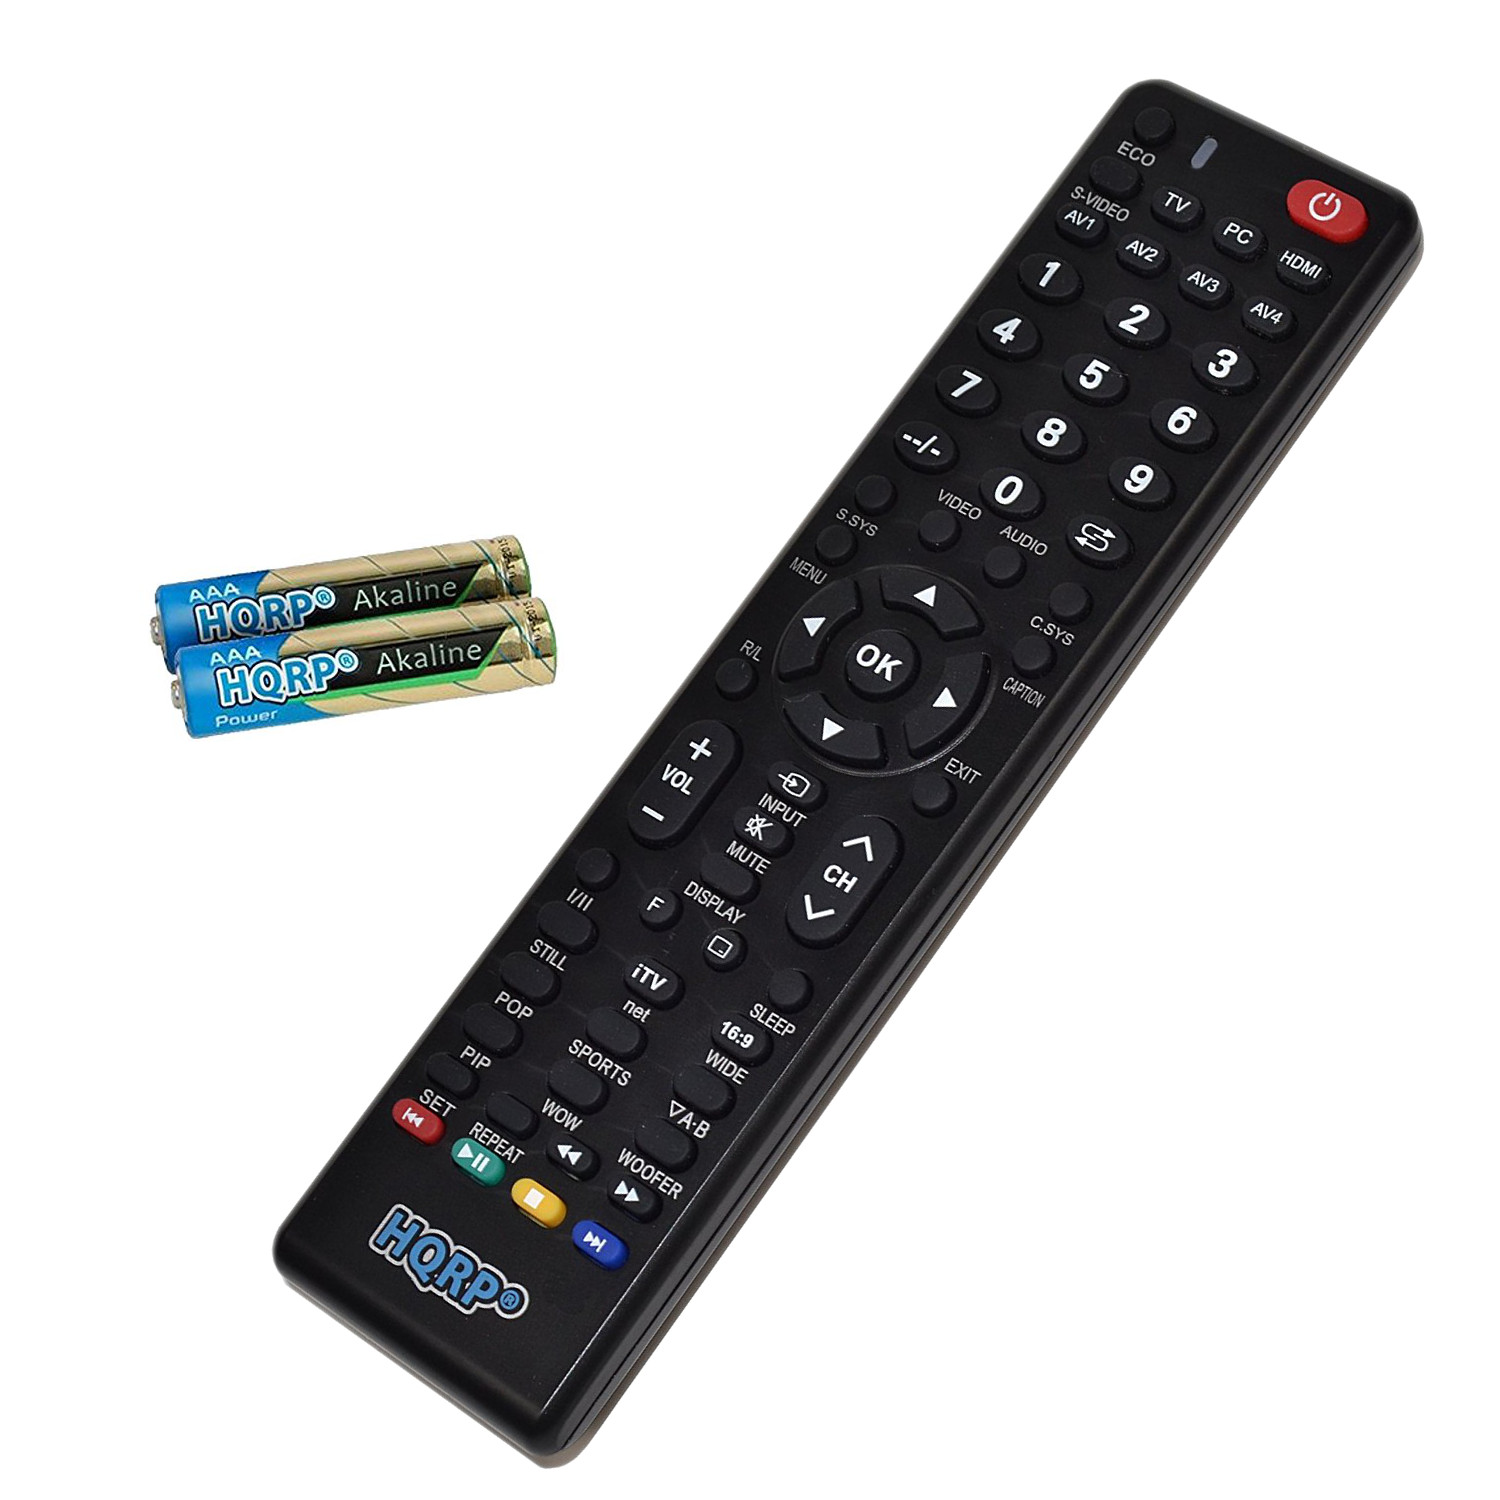 HQRP Remote Control for Sanyo DP47840, DP50740, DP50741, DP50747 LCD LED HD TV Smart 1080p 3D Ultra 4K + HQRP Coaster